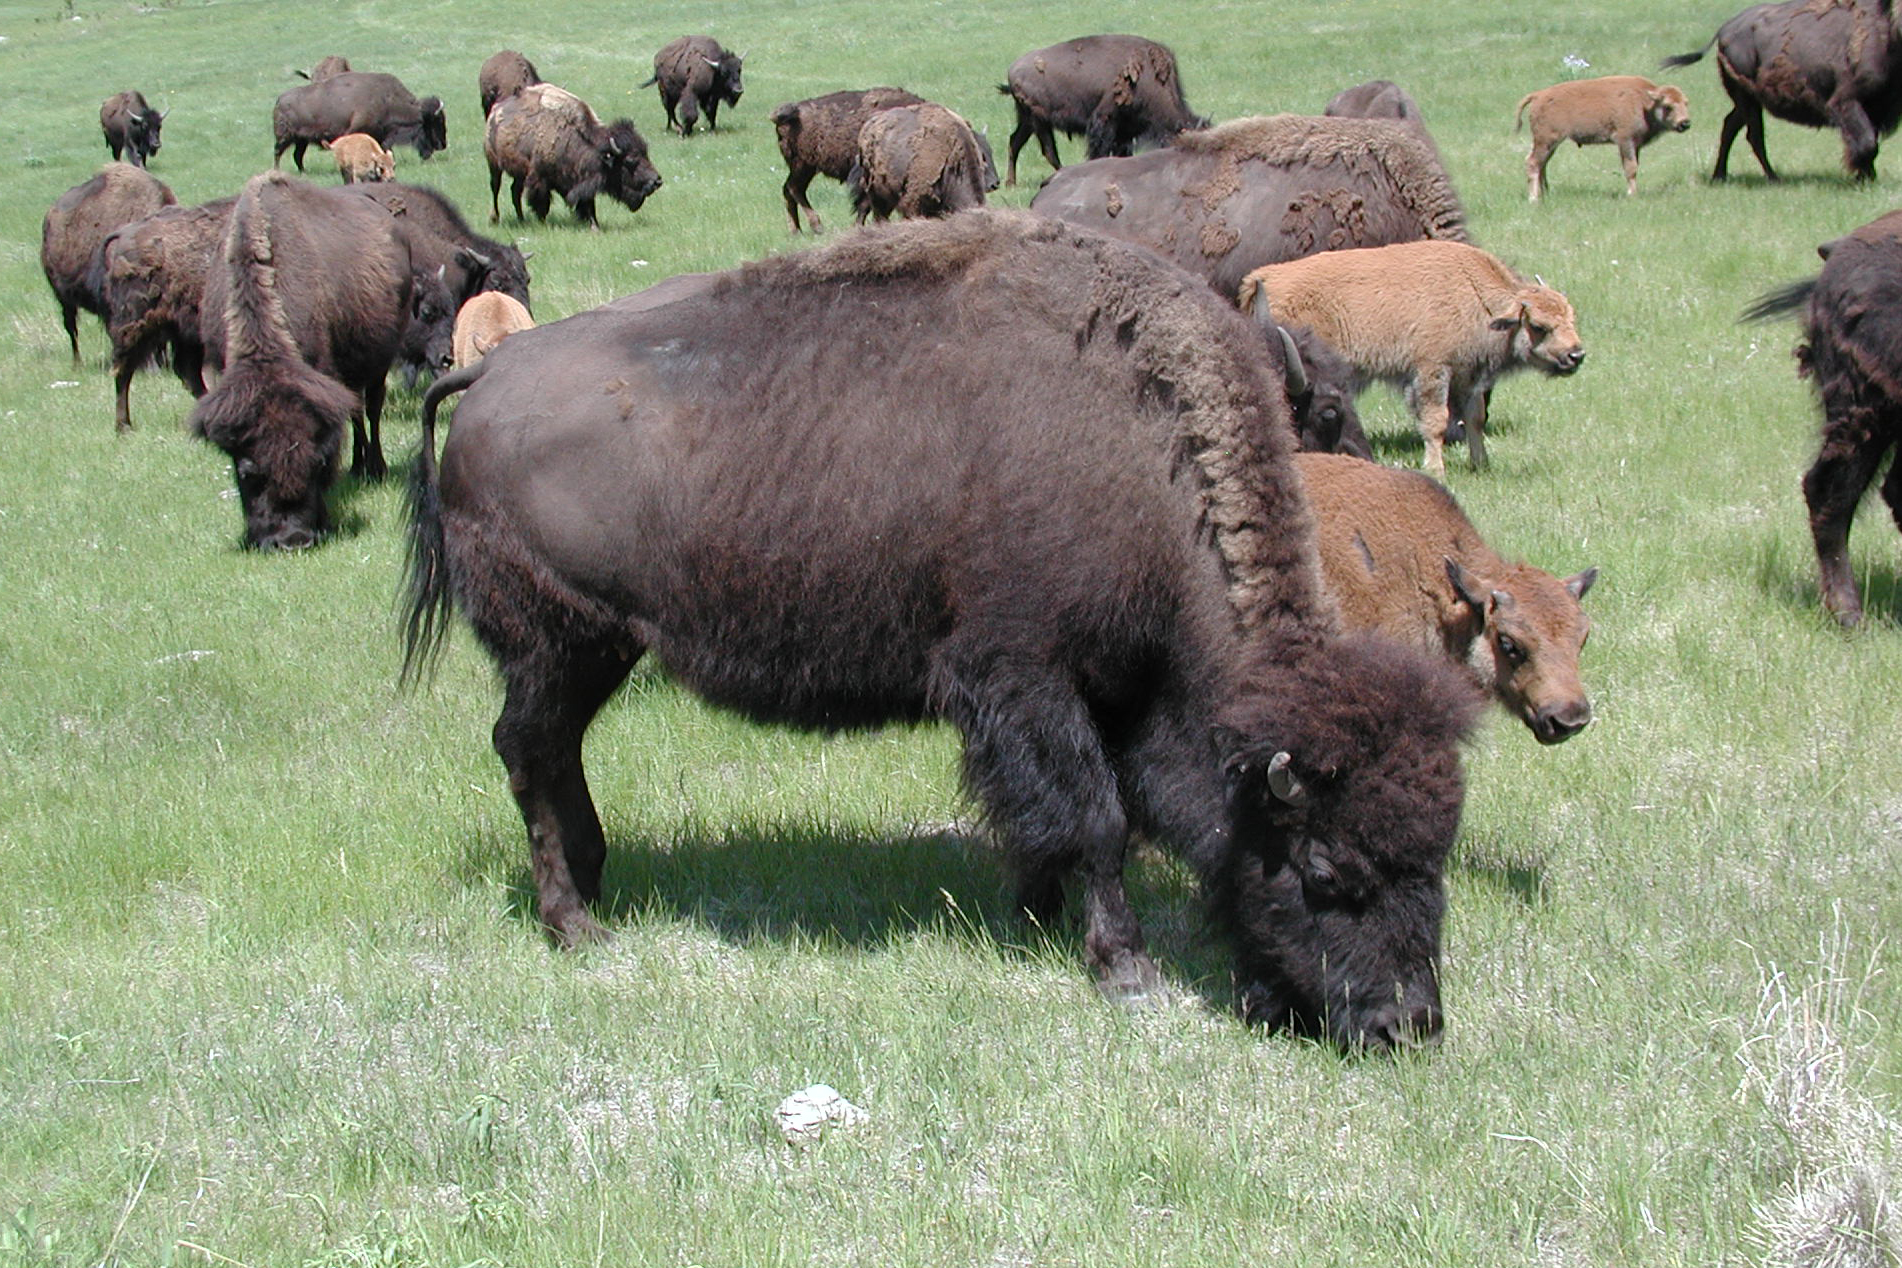 http://upload.wikimedia.org/wikipedia/commons/9/90/Tatanka.jpg